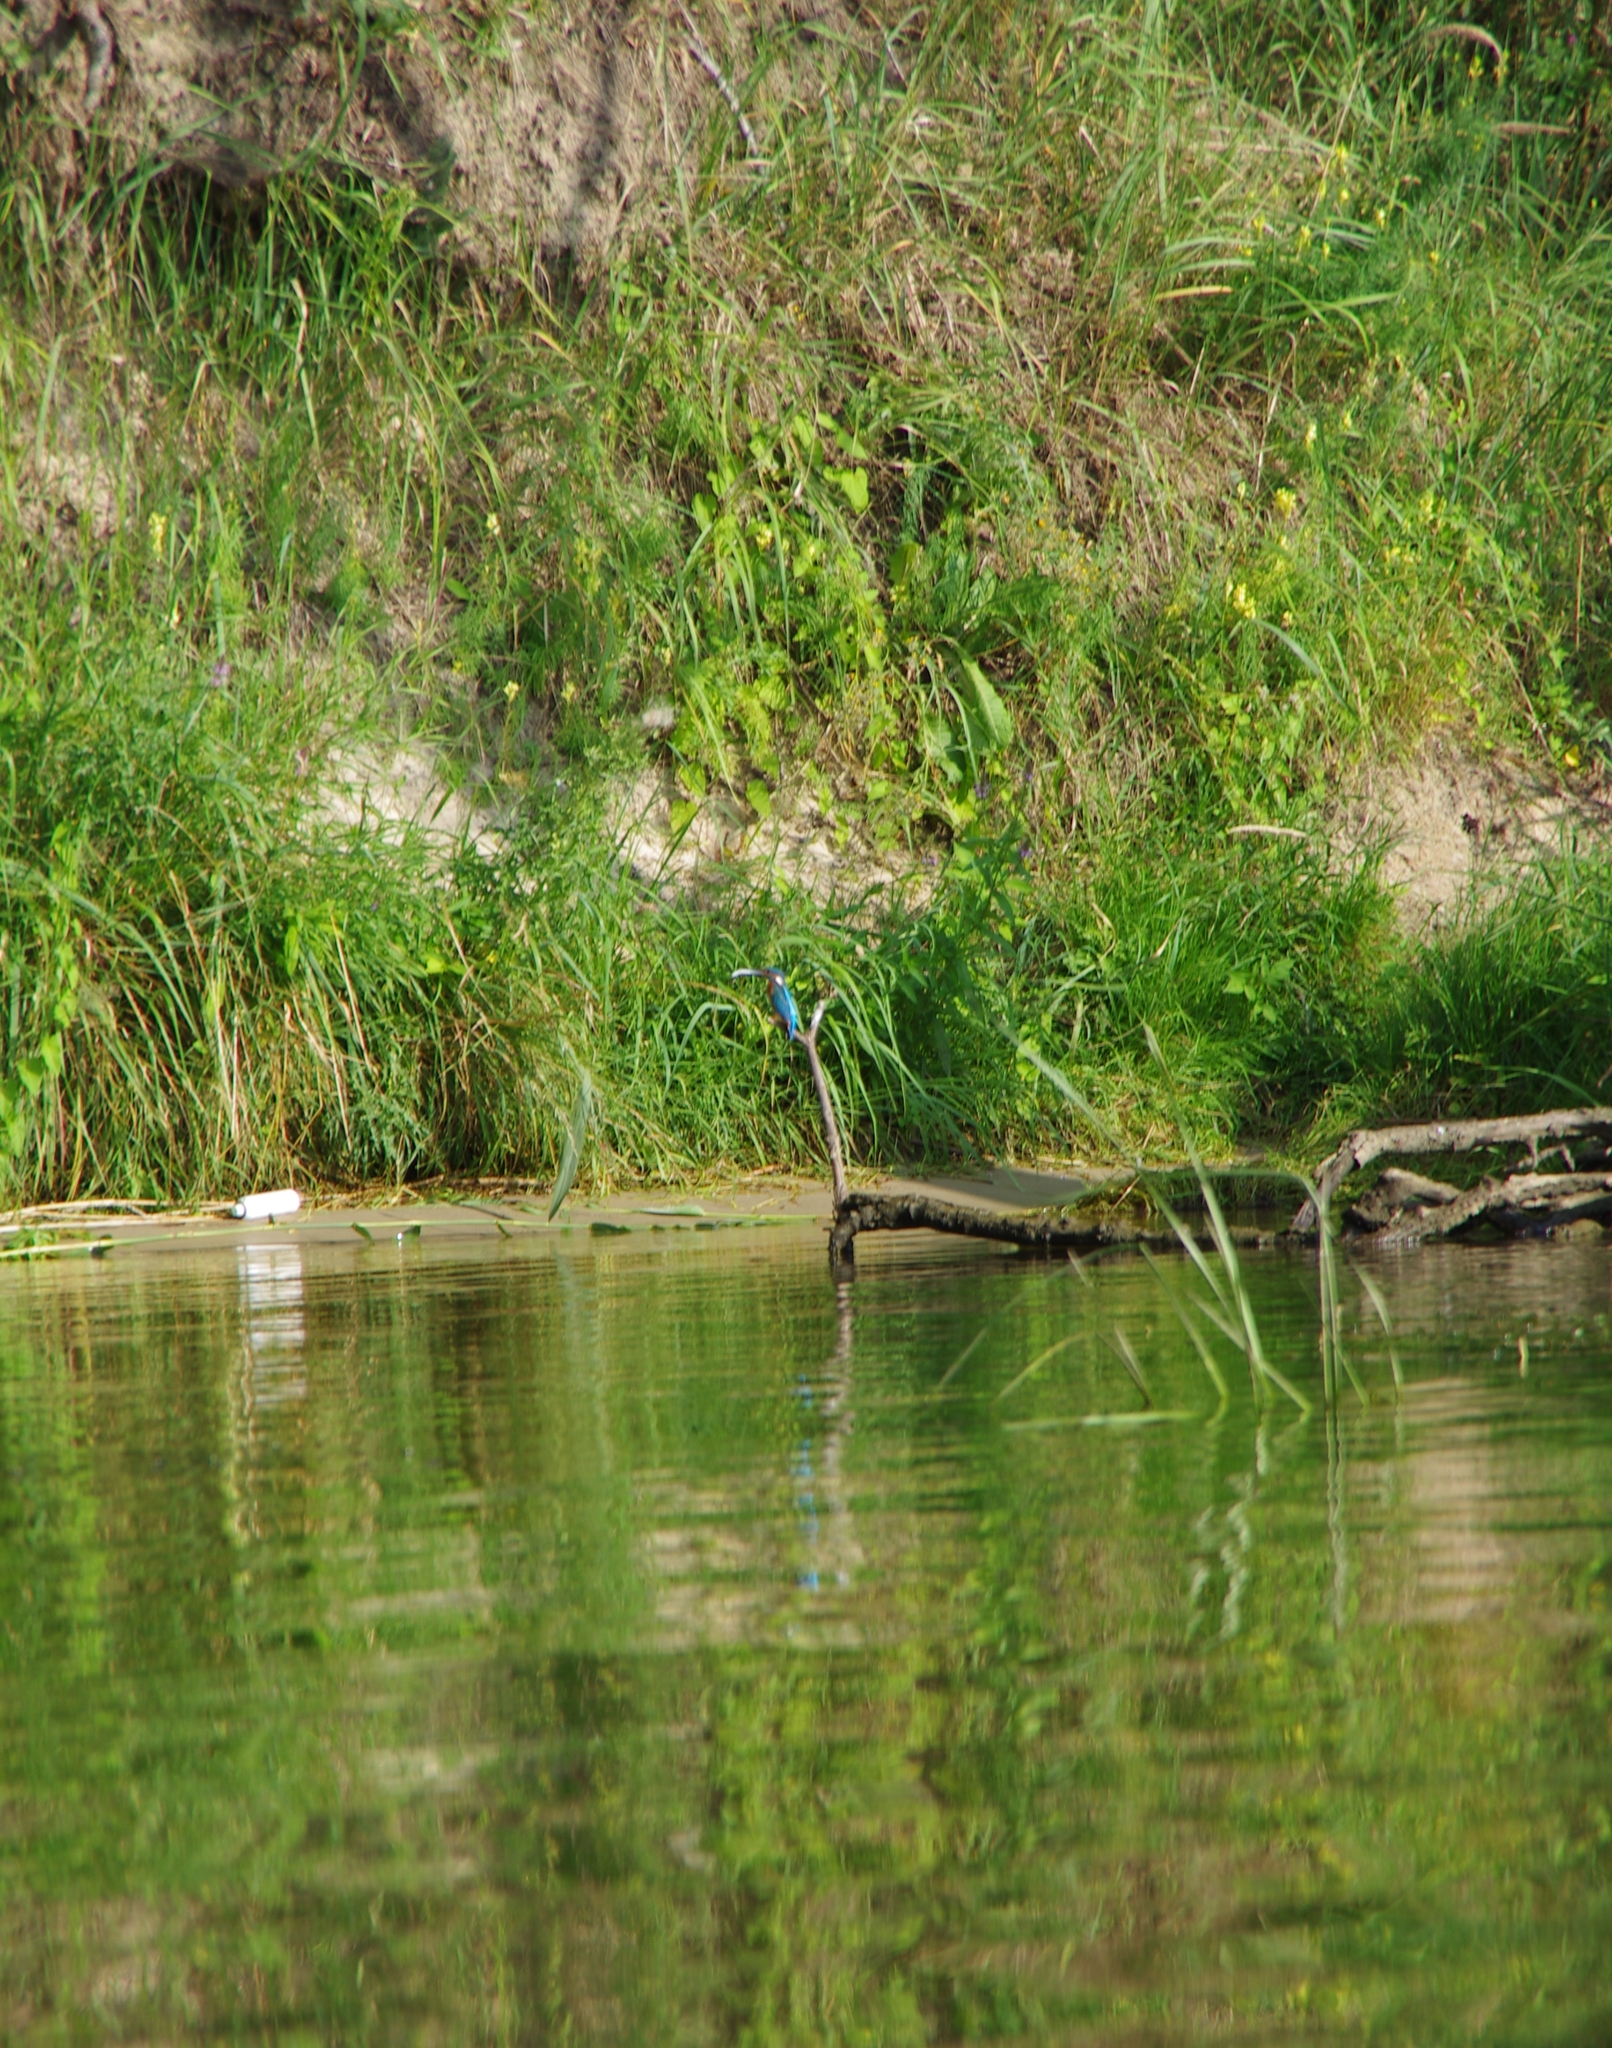 kayaking-odra-east-and-west_16-42-08_25-07-2016